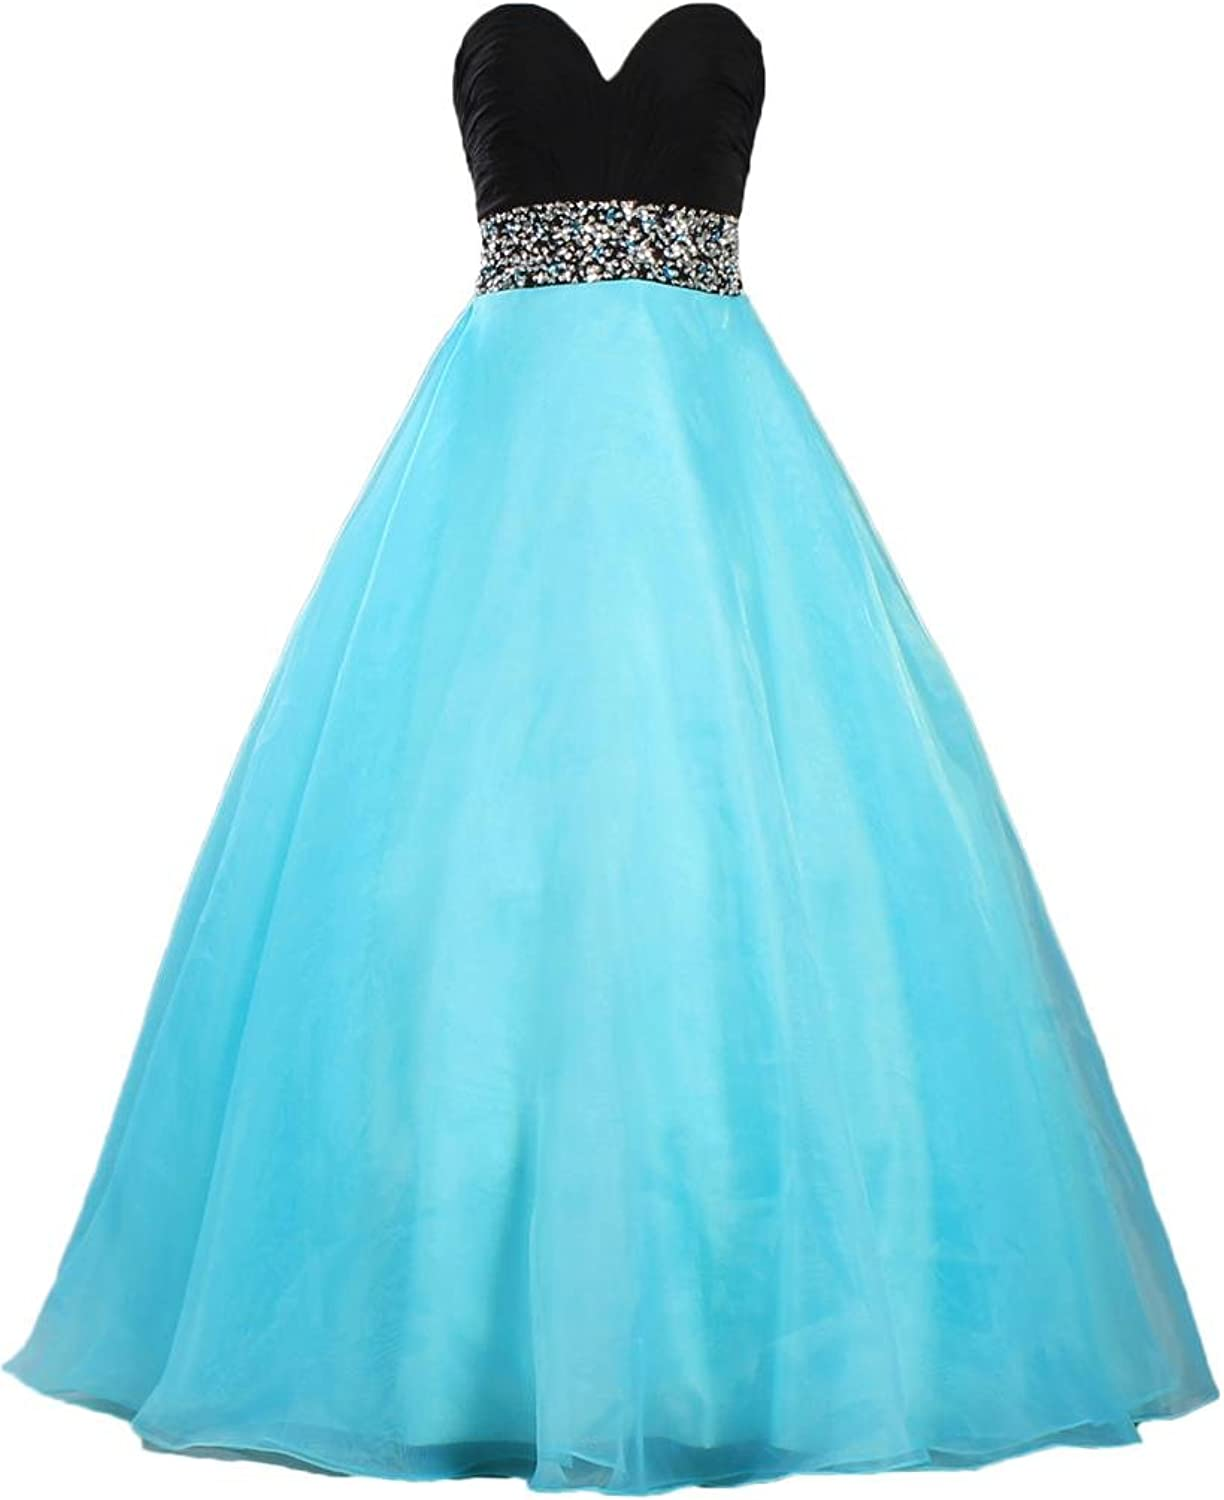 ANTS Women's Sweetheart Ball Gown Quinceanera Dress Long Prom Dresses